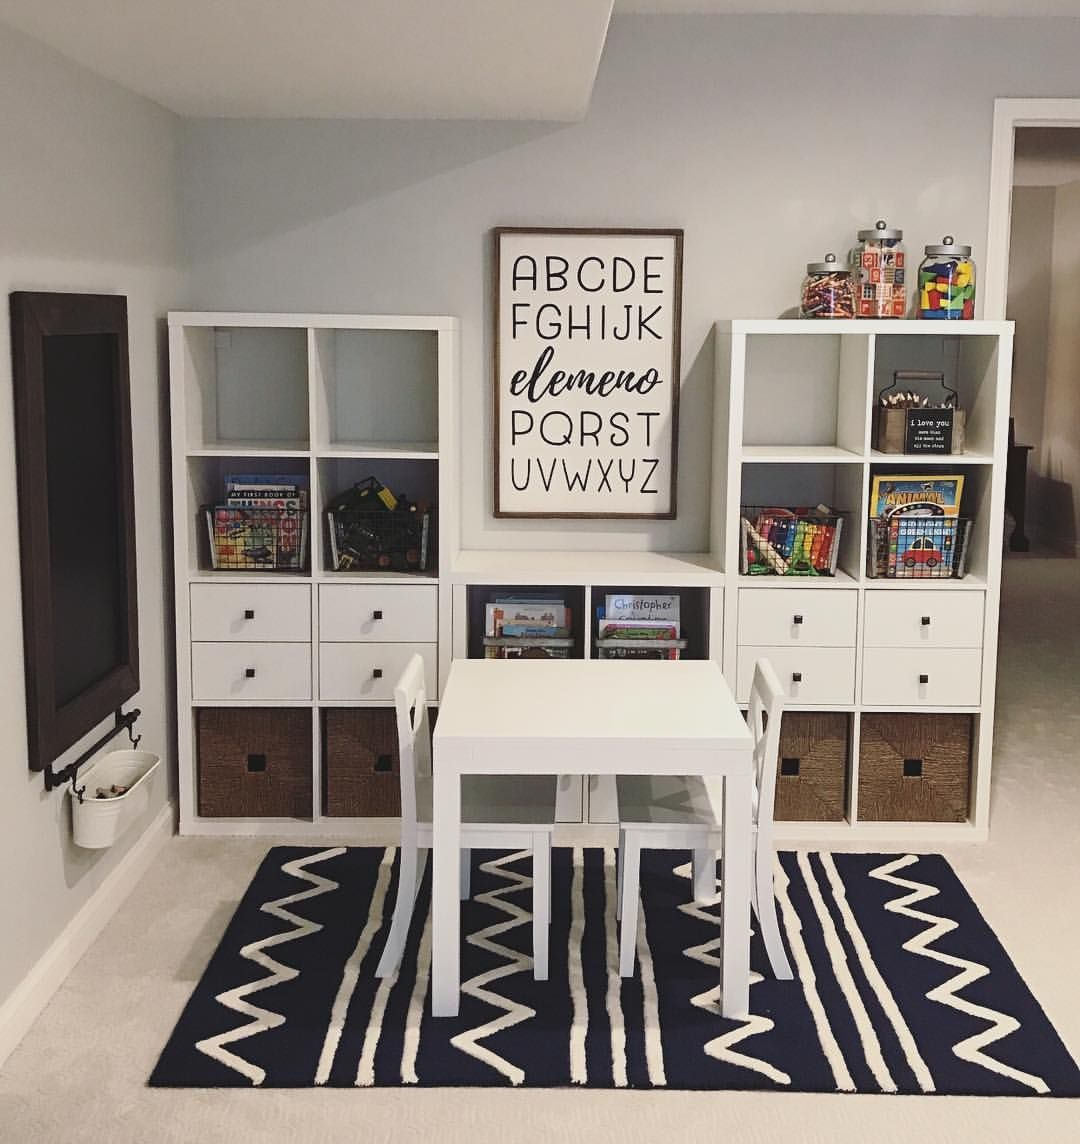 How Gorgeous Is This Playroom?! It's Inspiring Me To Redo My